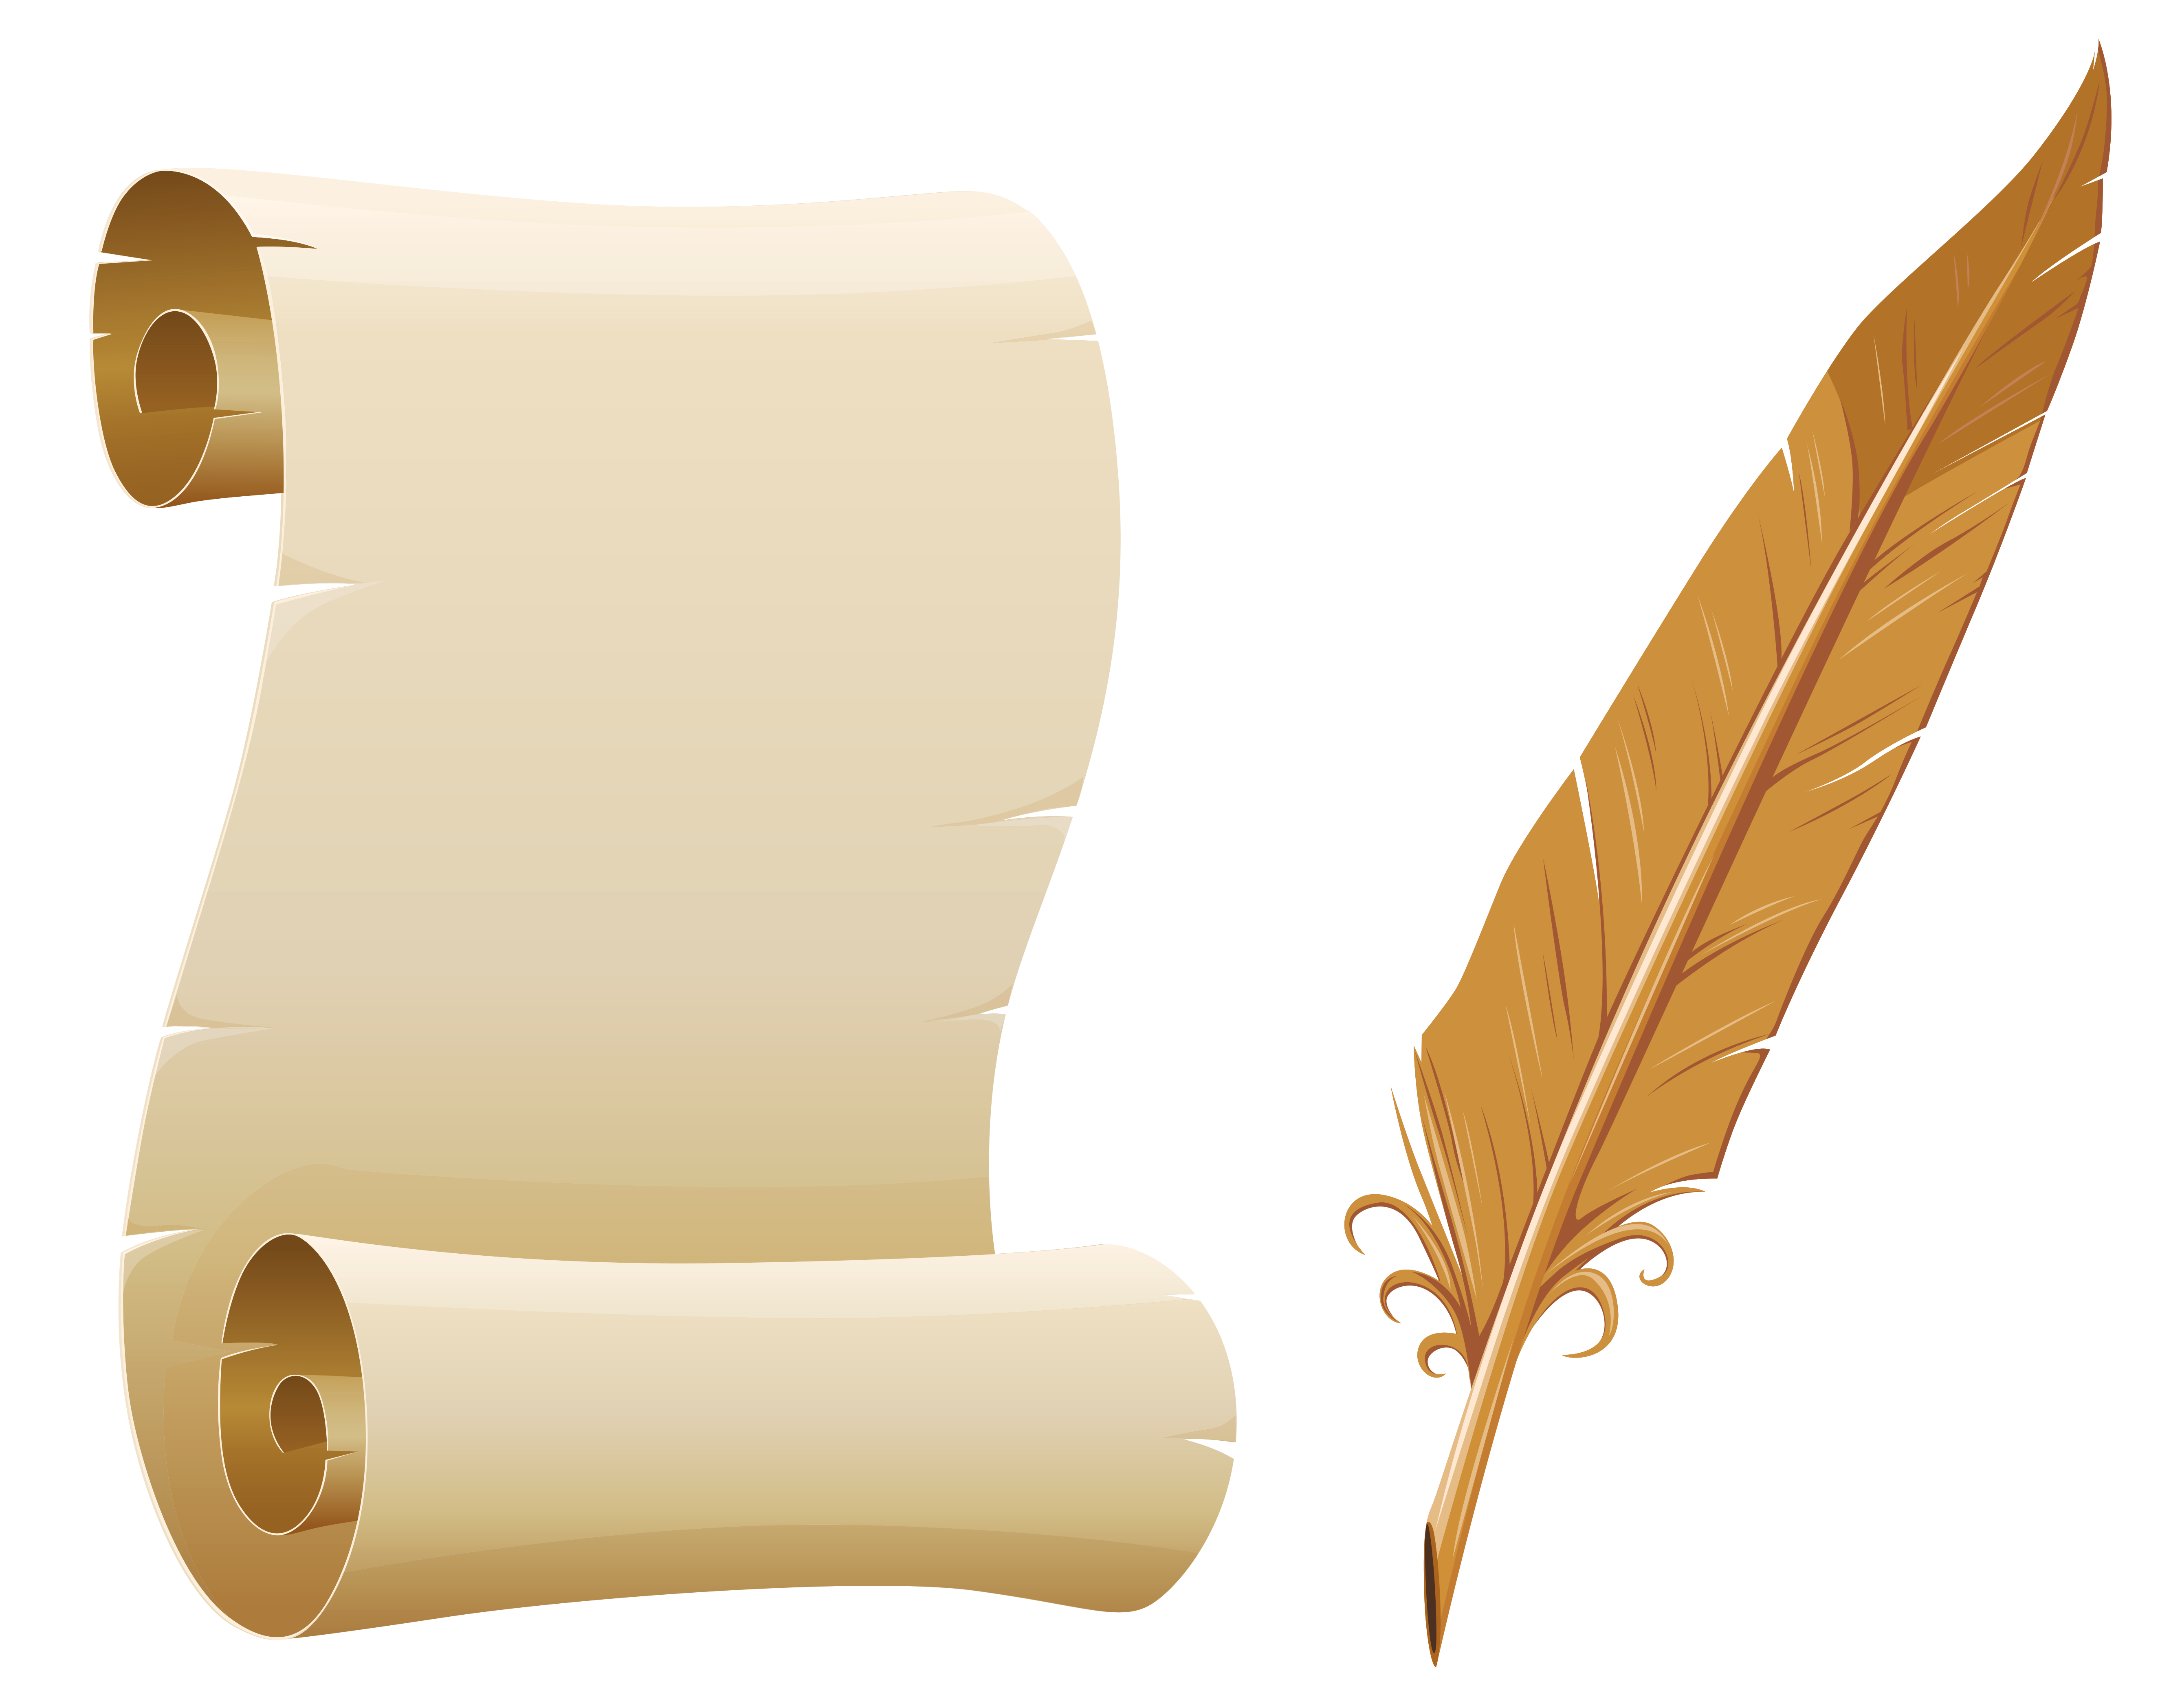 Clipart frame feather. Scrolled paper and quill